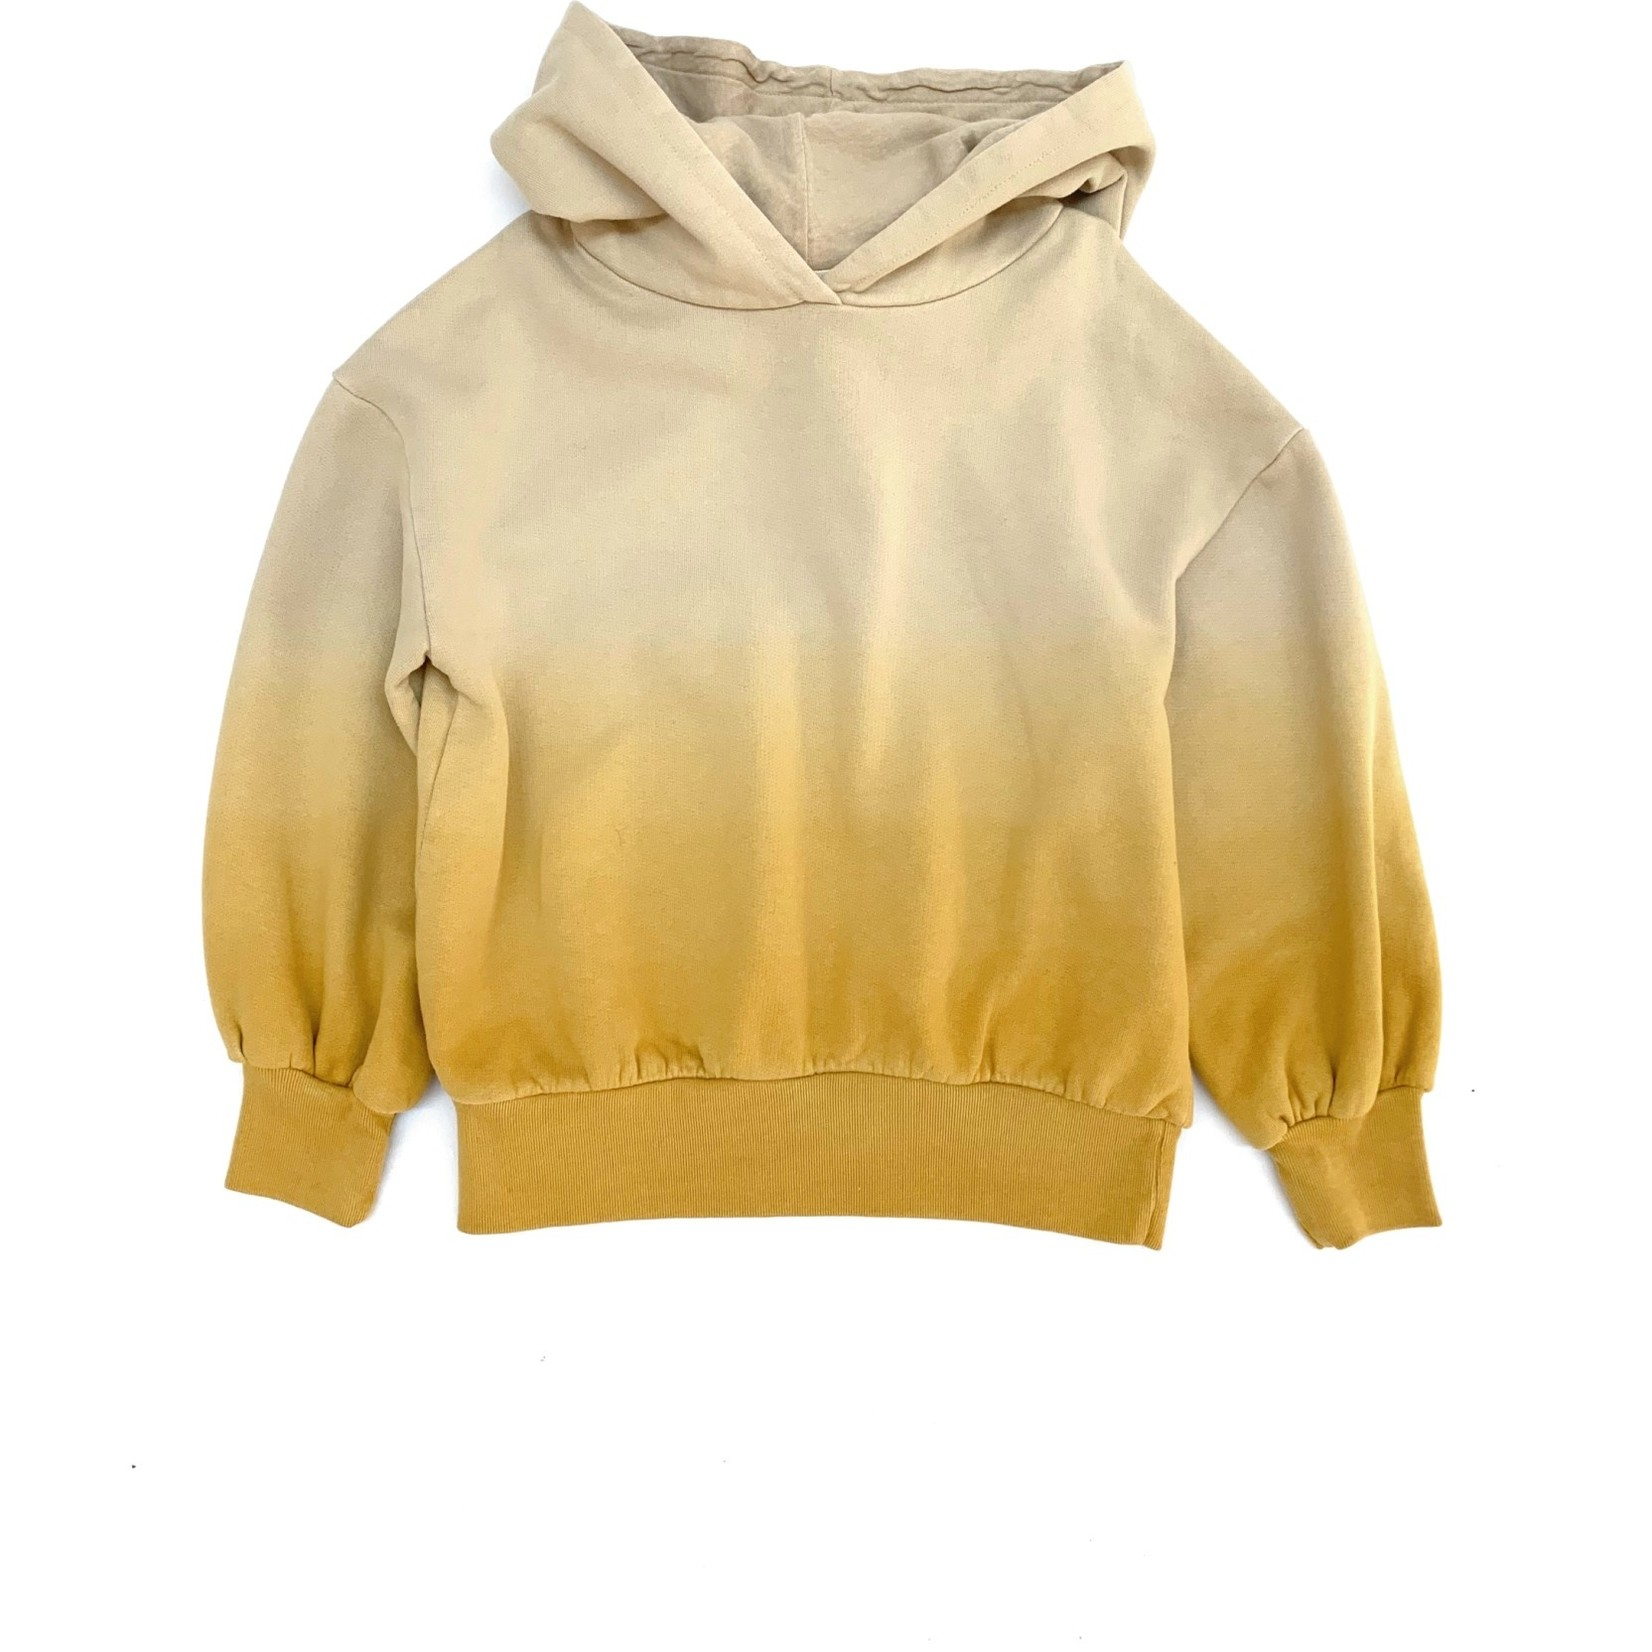 LONG LIVE THE QUEEN Long live the queen hooded sweater